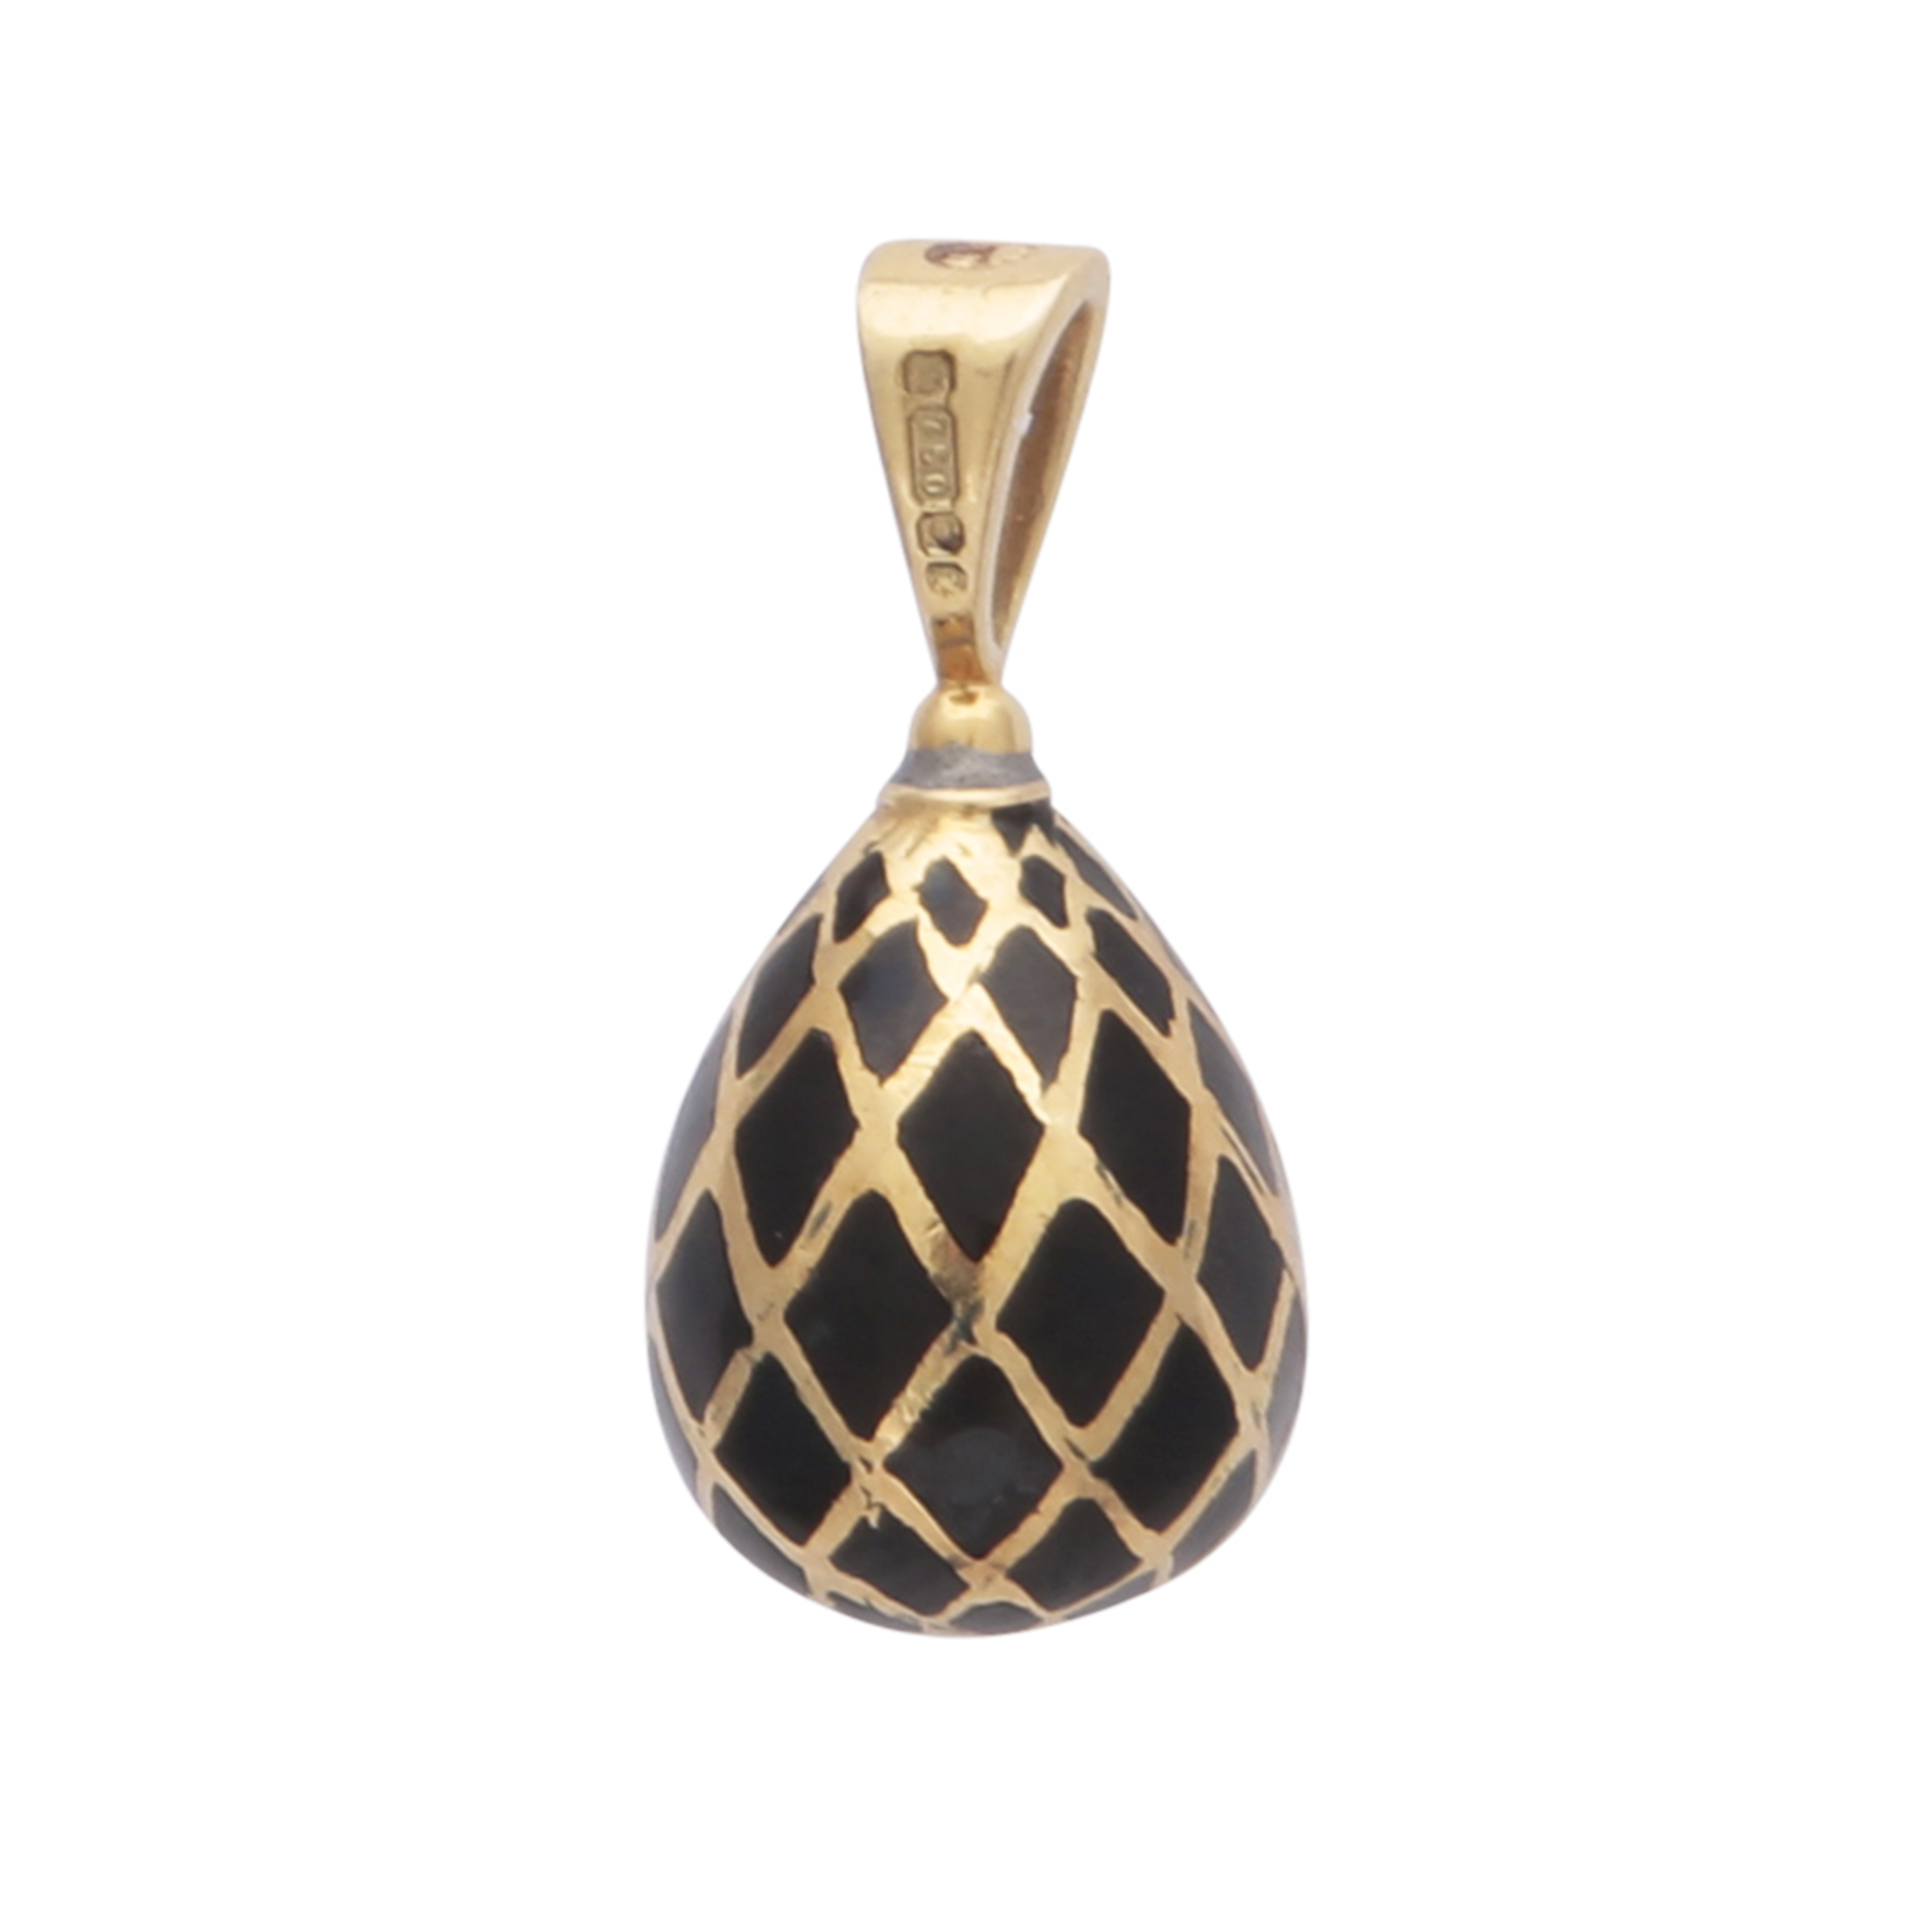 Los 164 - SARAH FABERGE - A contemporary enamelled egg pendant in 18ct yellow gold by Sarah Faberge,